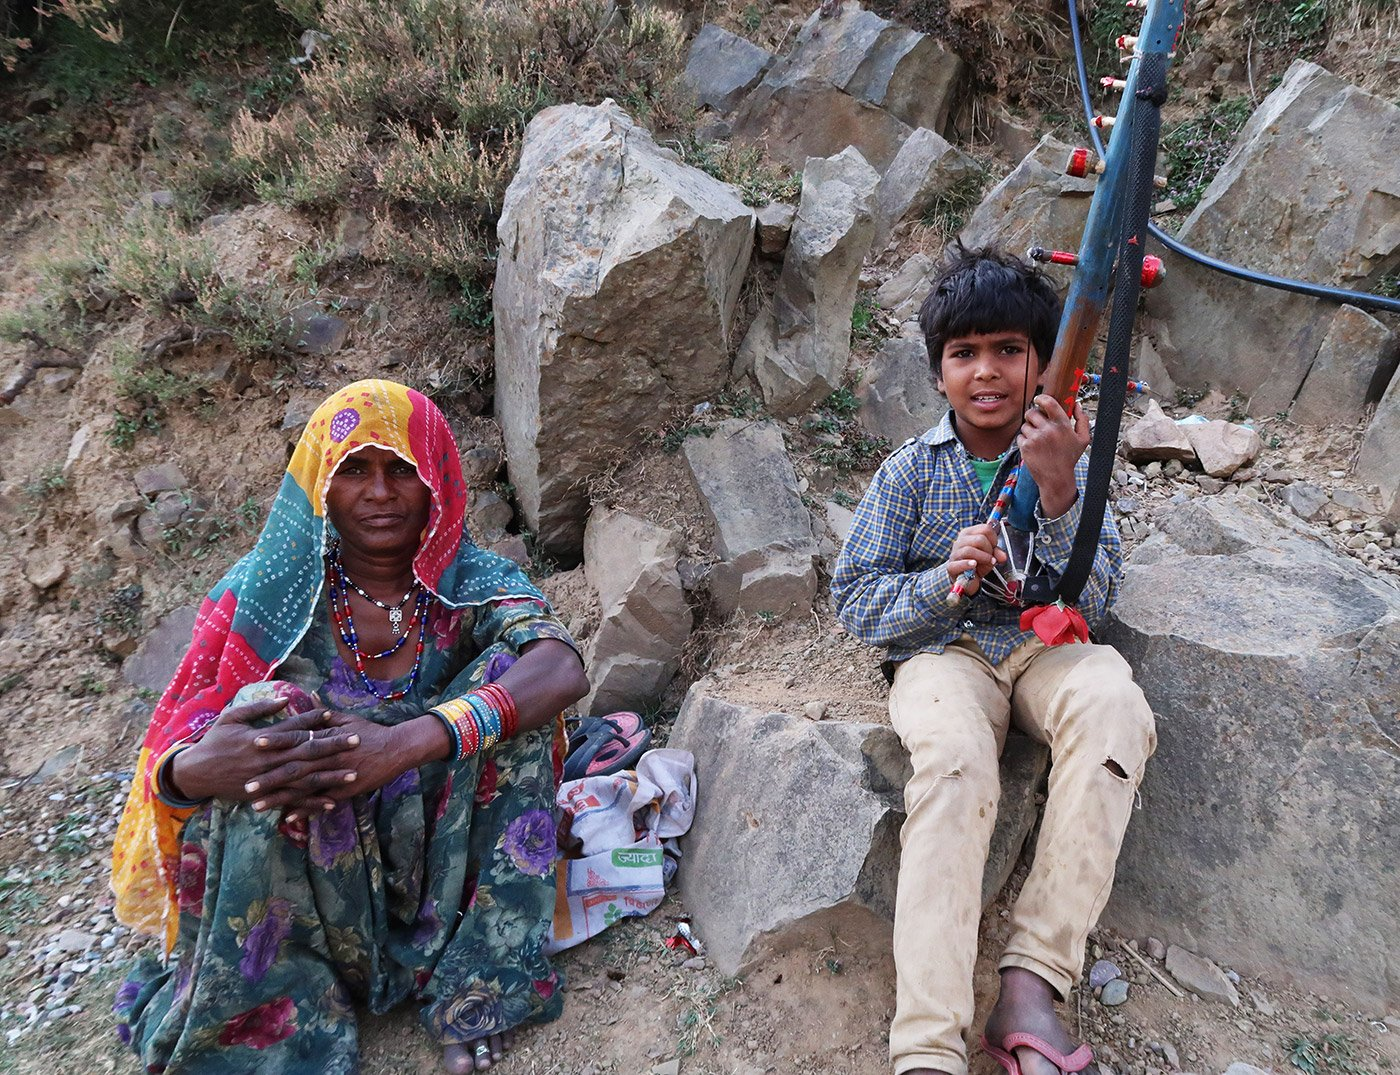 A woman and a young boy sitting amongst rocks. The boy has an instrument called ravanahatha in his hands